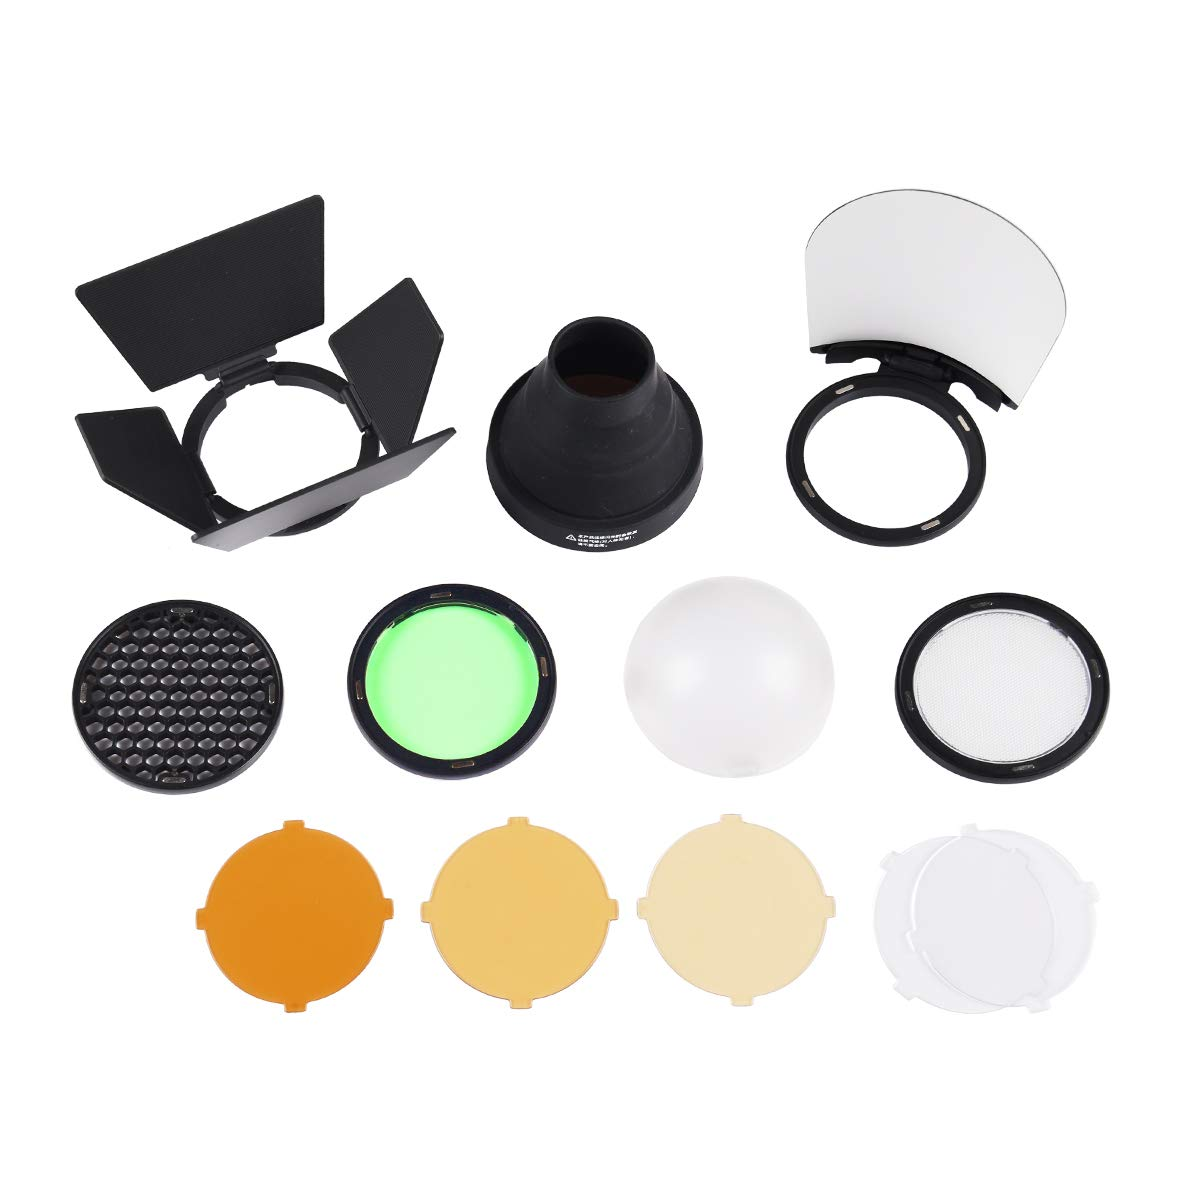 Godox AK-R1 AD200 Flash Light Accessories Kit,Barn Door,Snoor,Color Filter,Reflector,Honeycomb,Diffuser Ball Kit for Round Flash Head with Magnetic Port by Godox